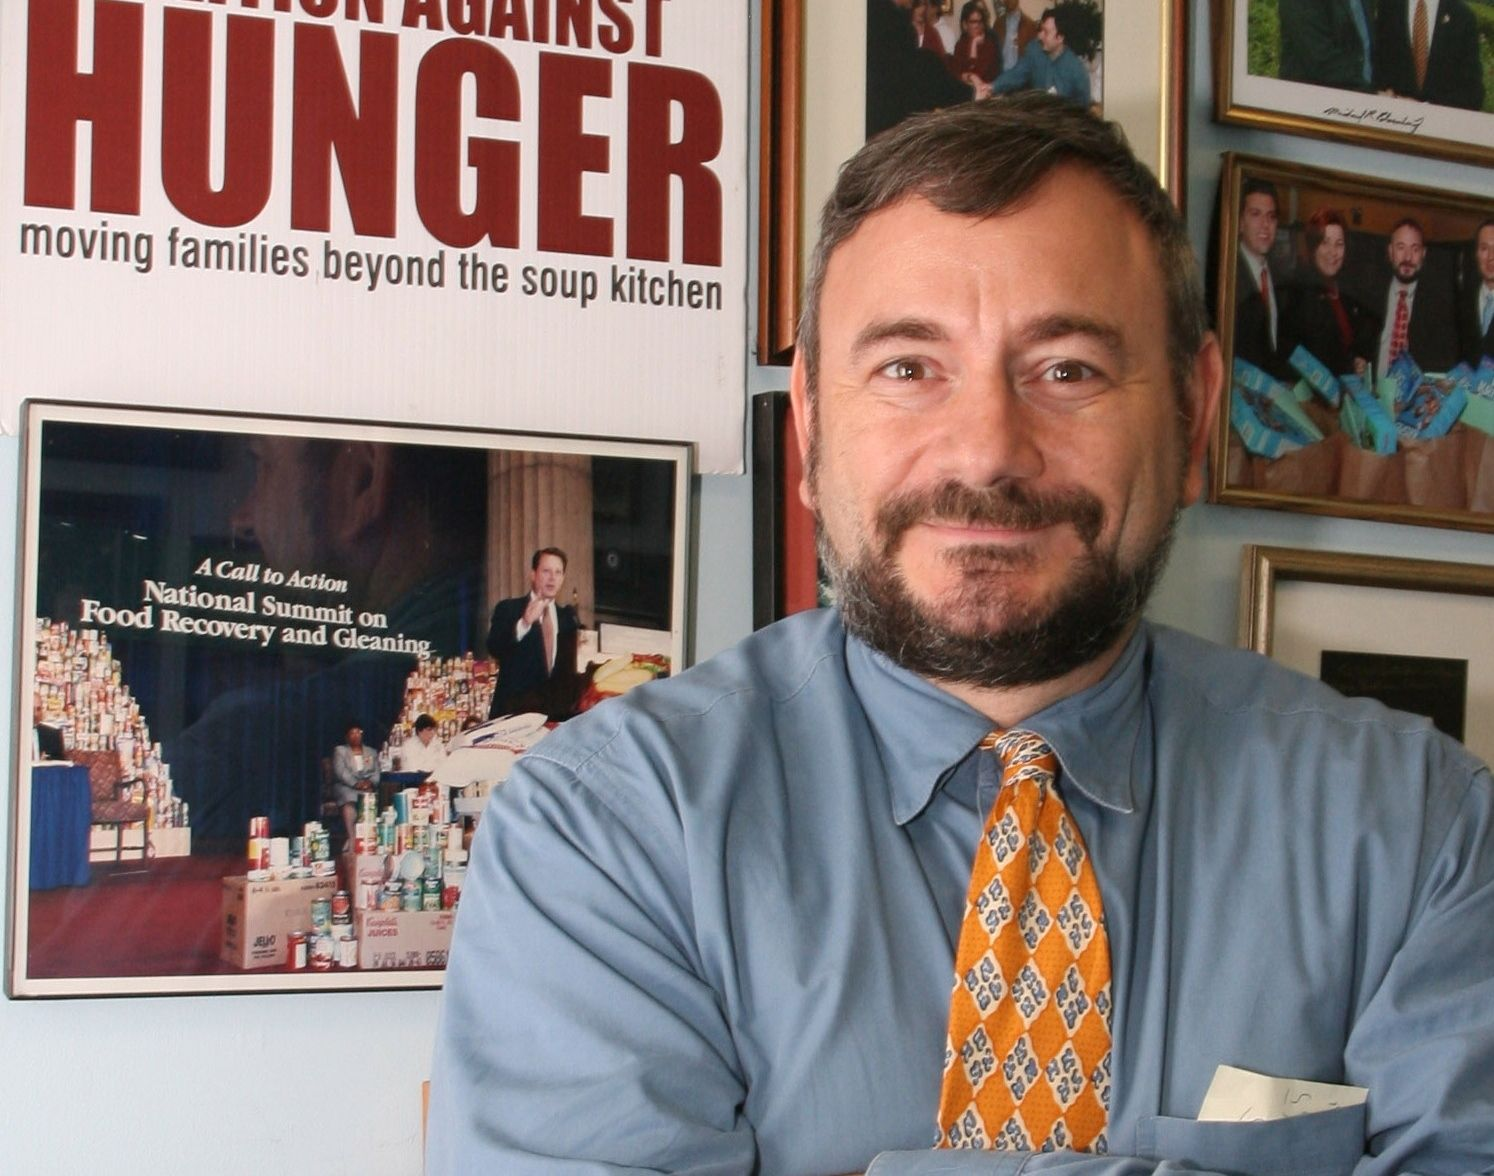 Help end hunger in New York City